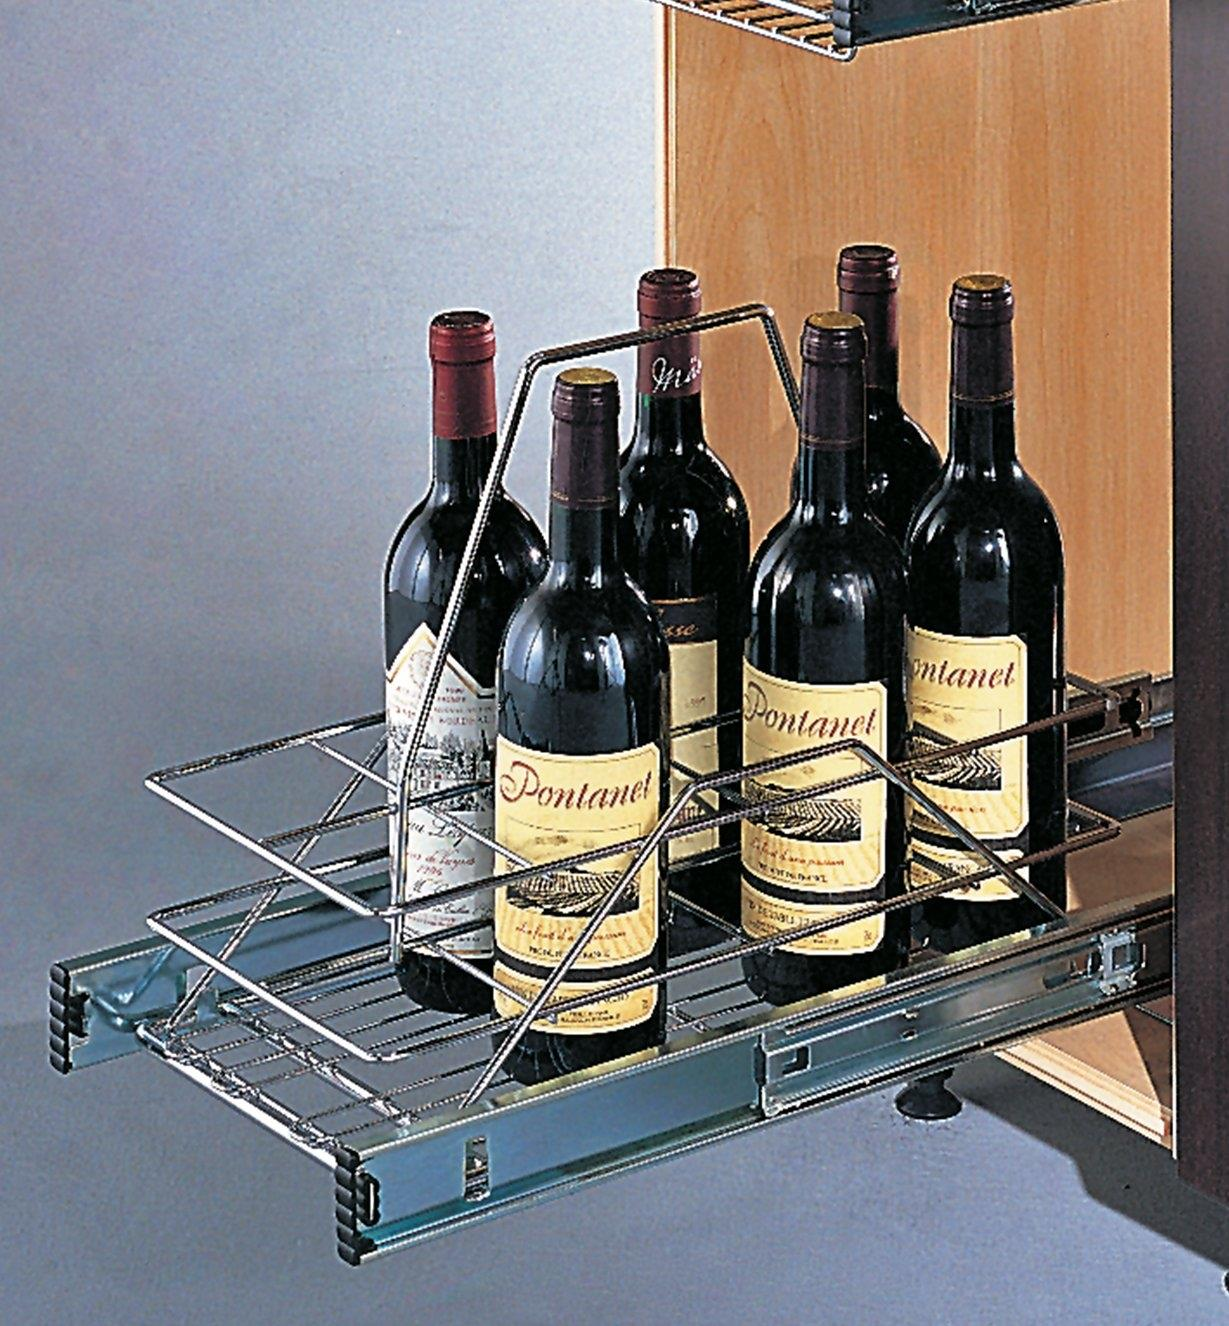 Basket Pullout mounted in a cupboard, holding bottles of wine